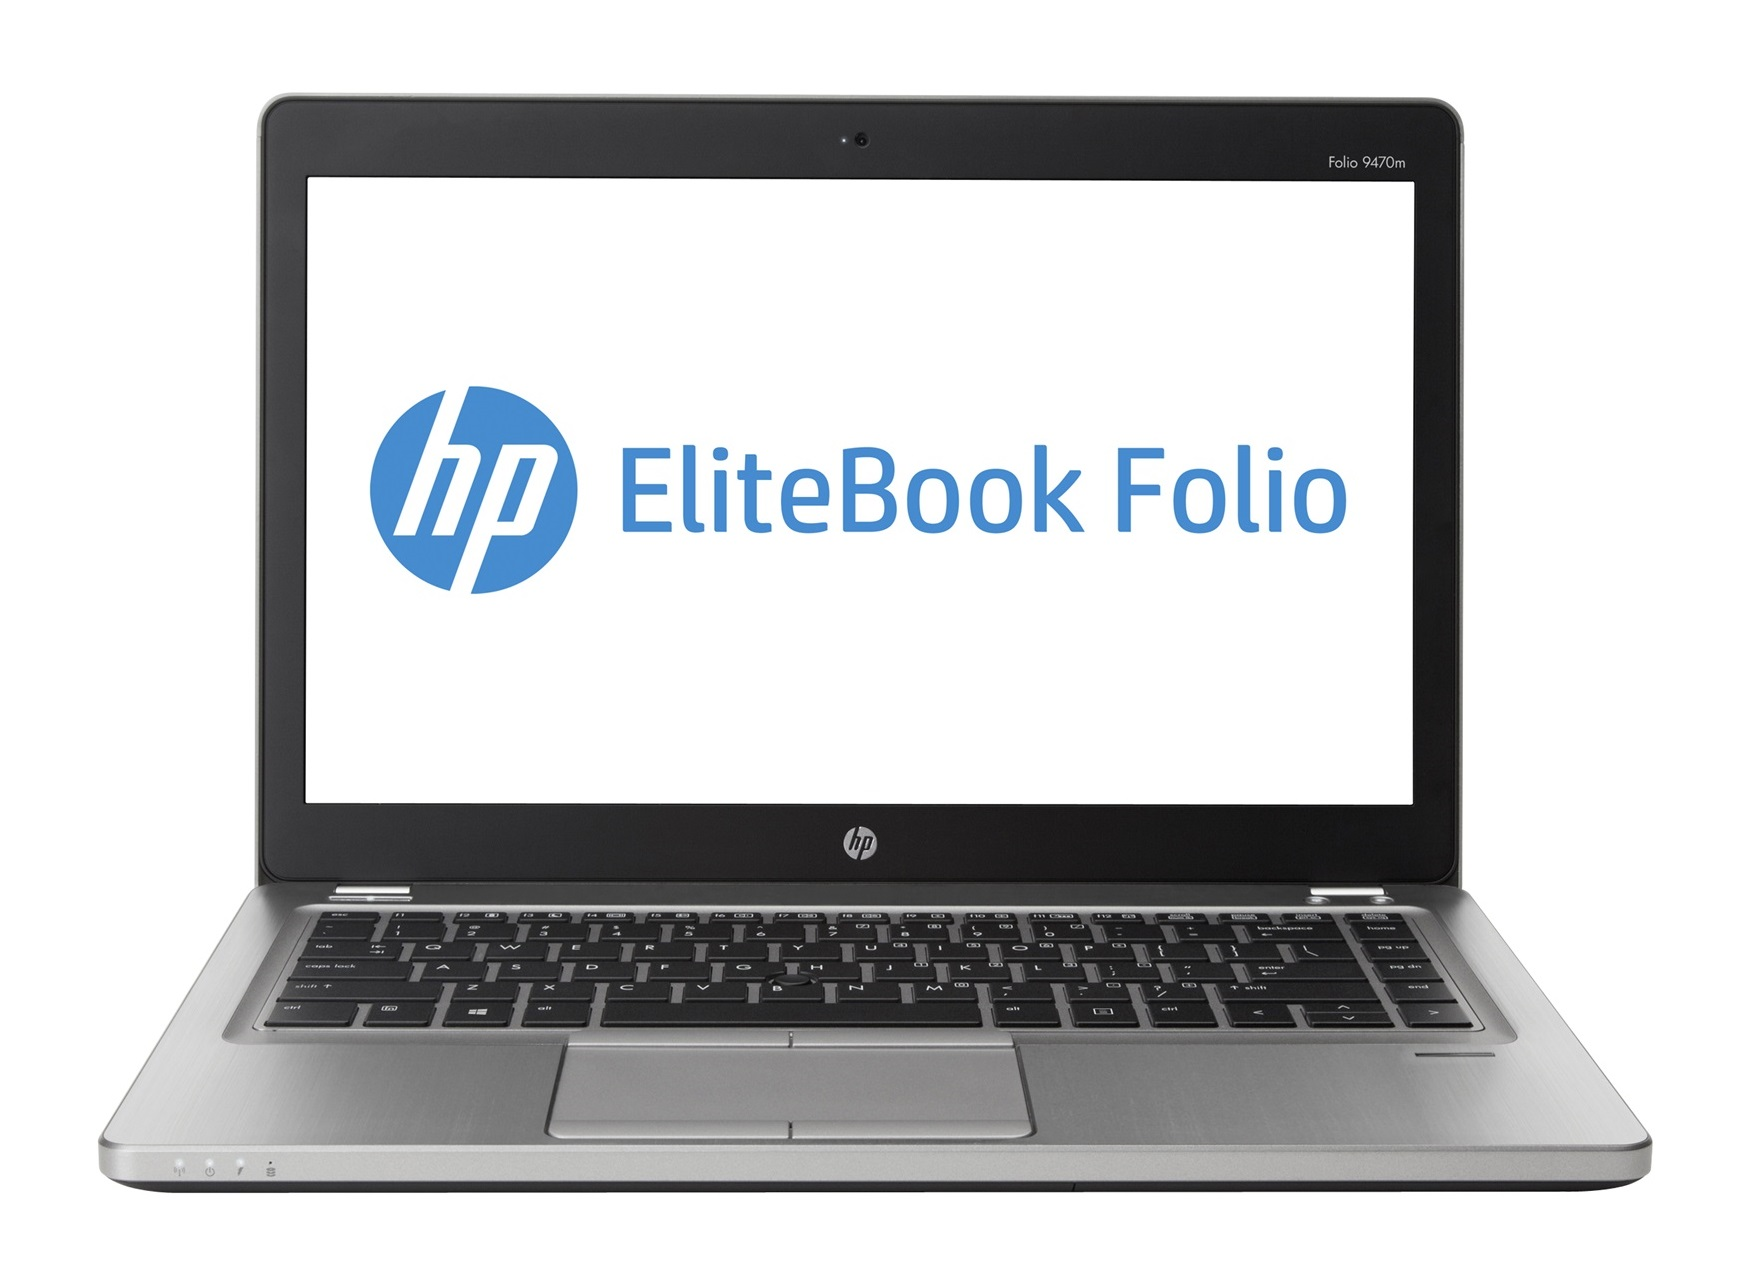 HP Folio EliteBook Folio 9470m 4GB, 128GB SSD, Windows 7 Pro